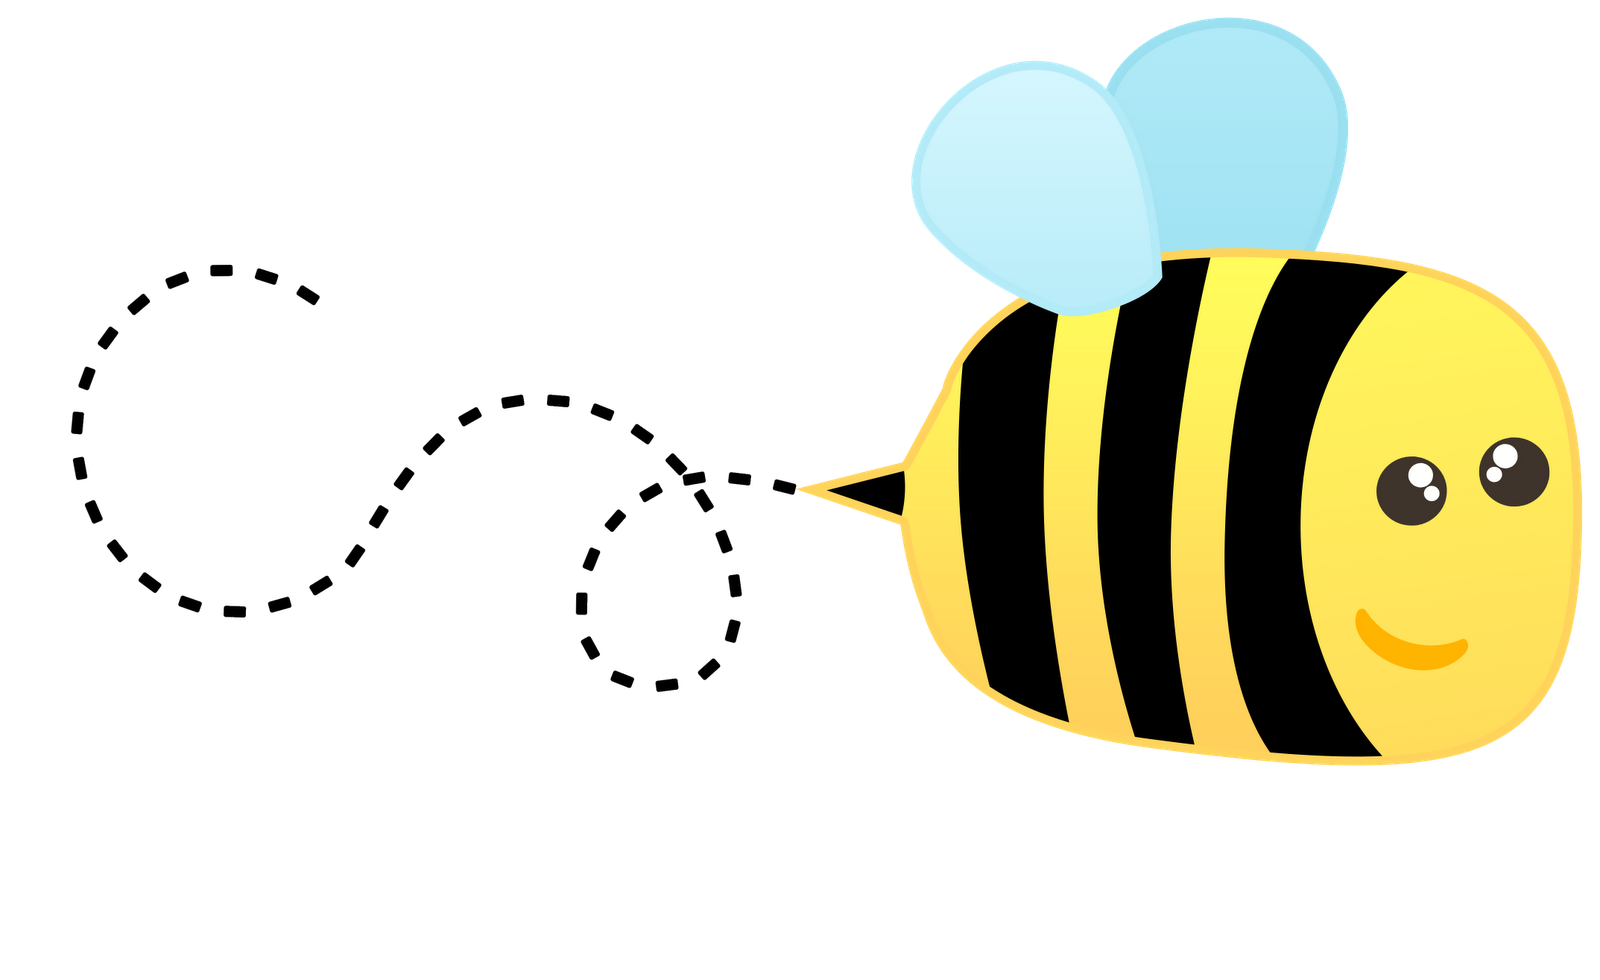 Ladybug clipart bee. Guest blogger tuesday featuring